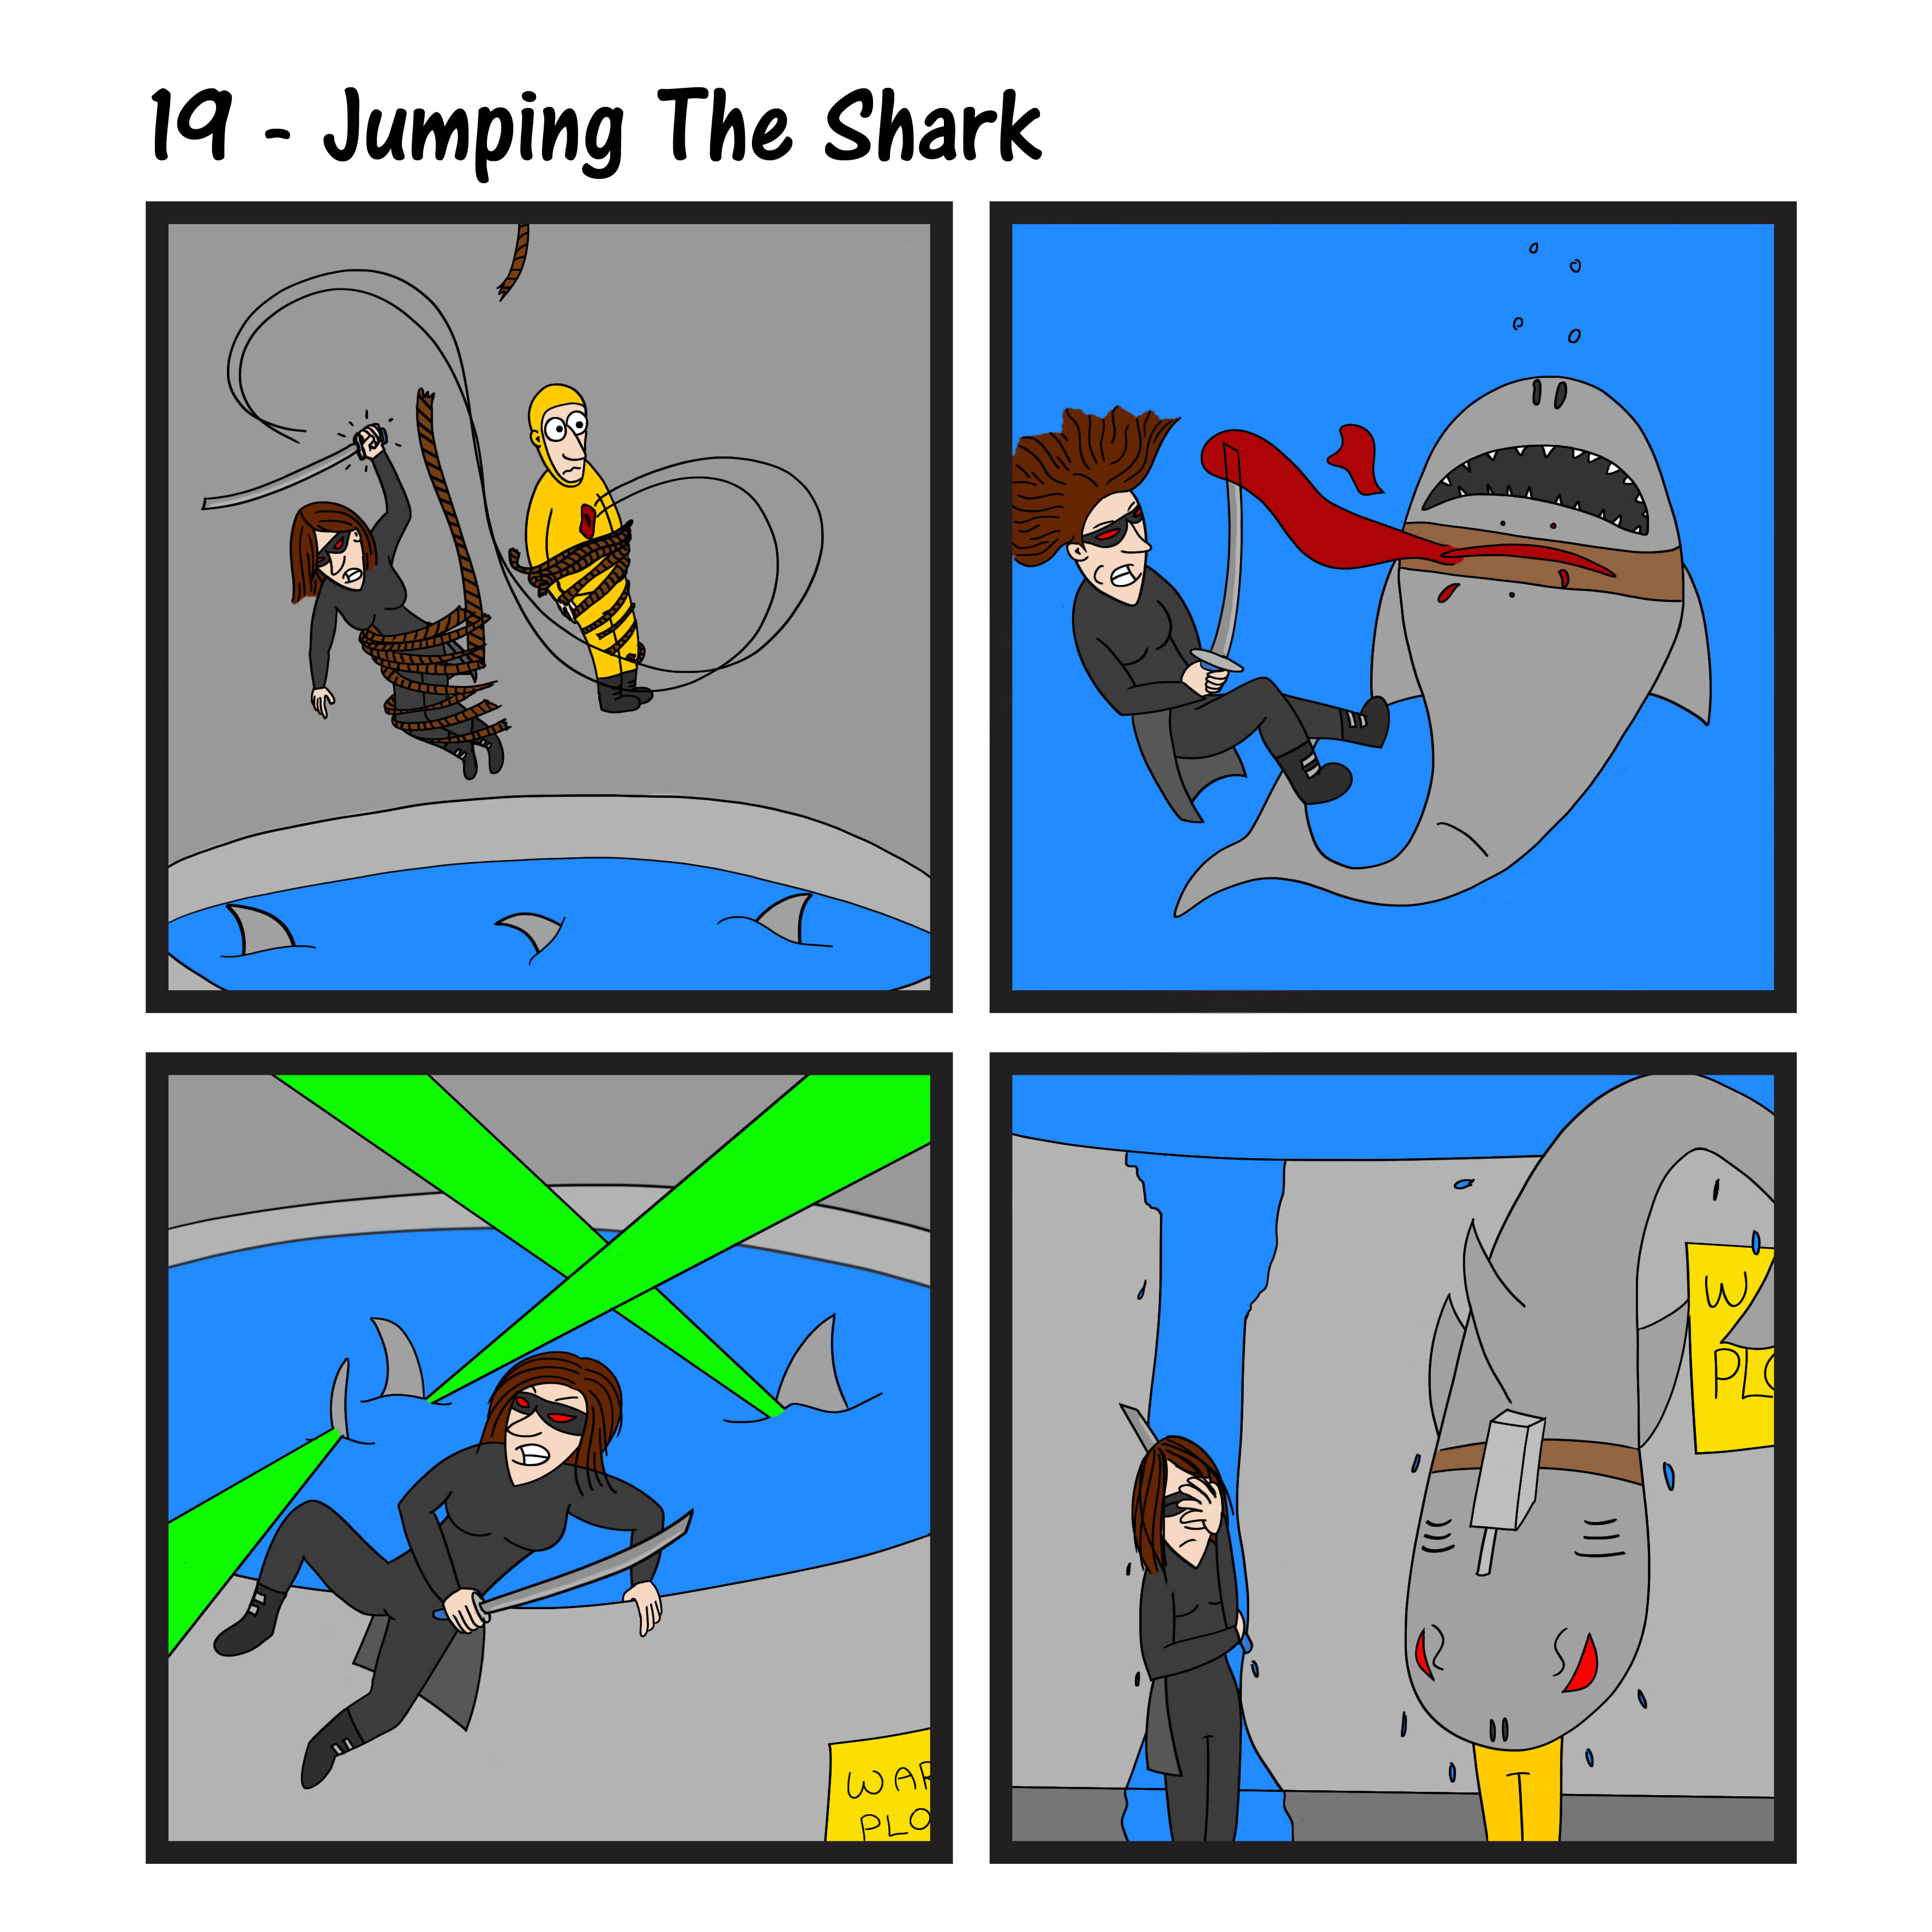 19 – Jumping the Shark